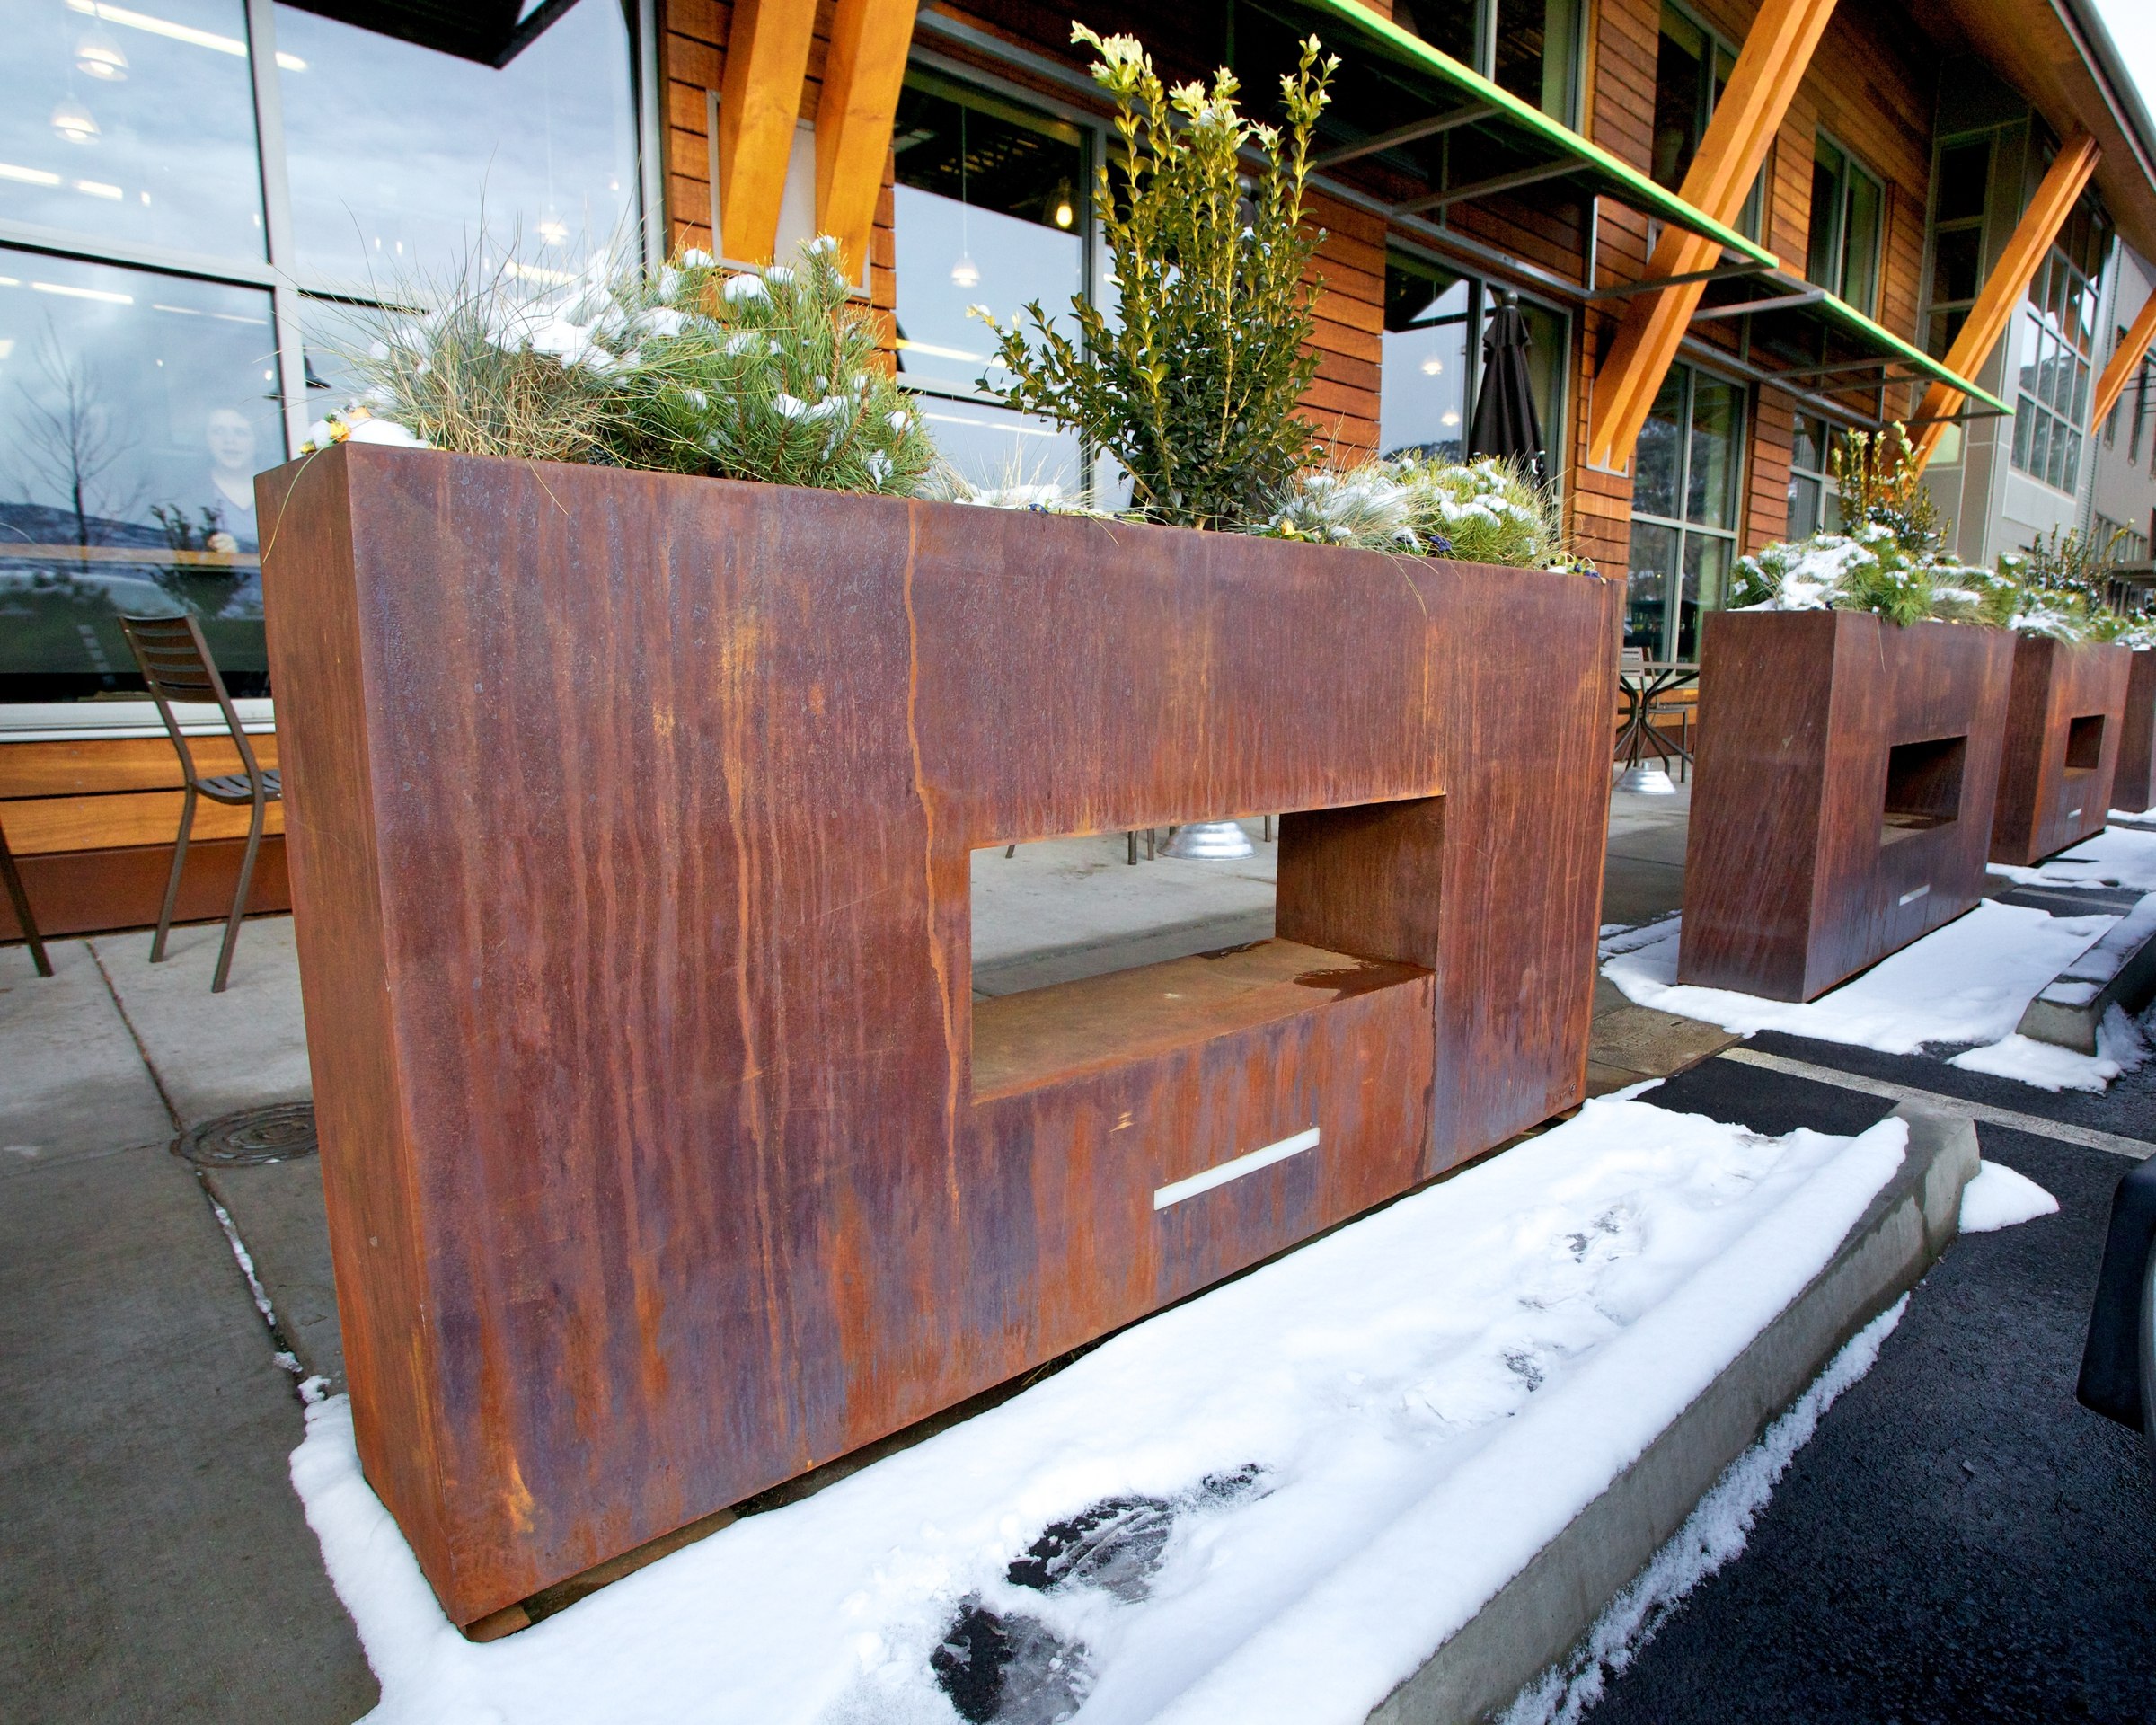 commercial planters at yard art  corporate city hotel - whole foods commercial shopping center planters